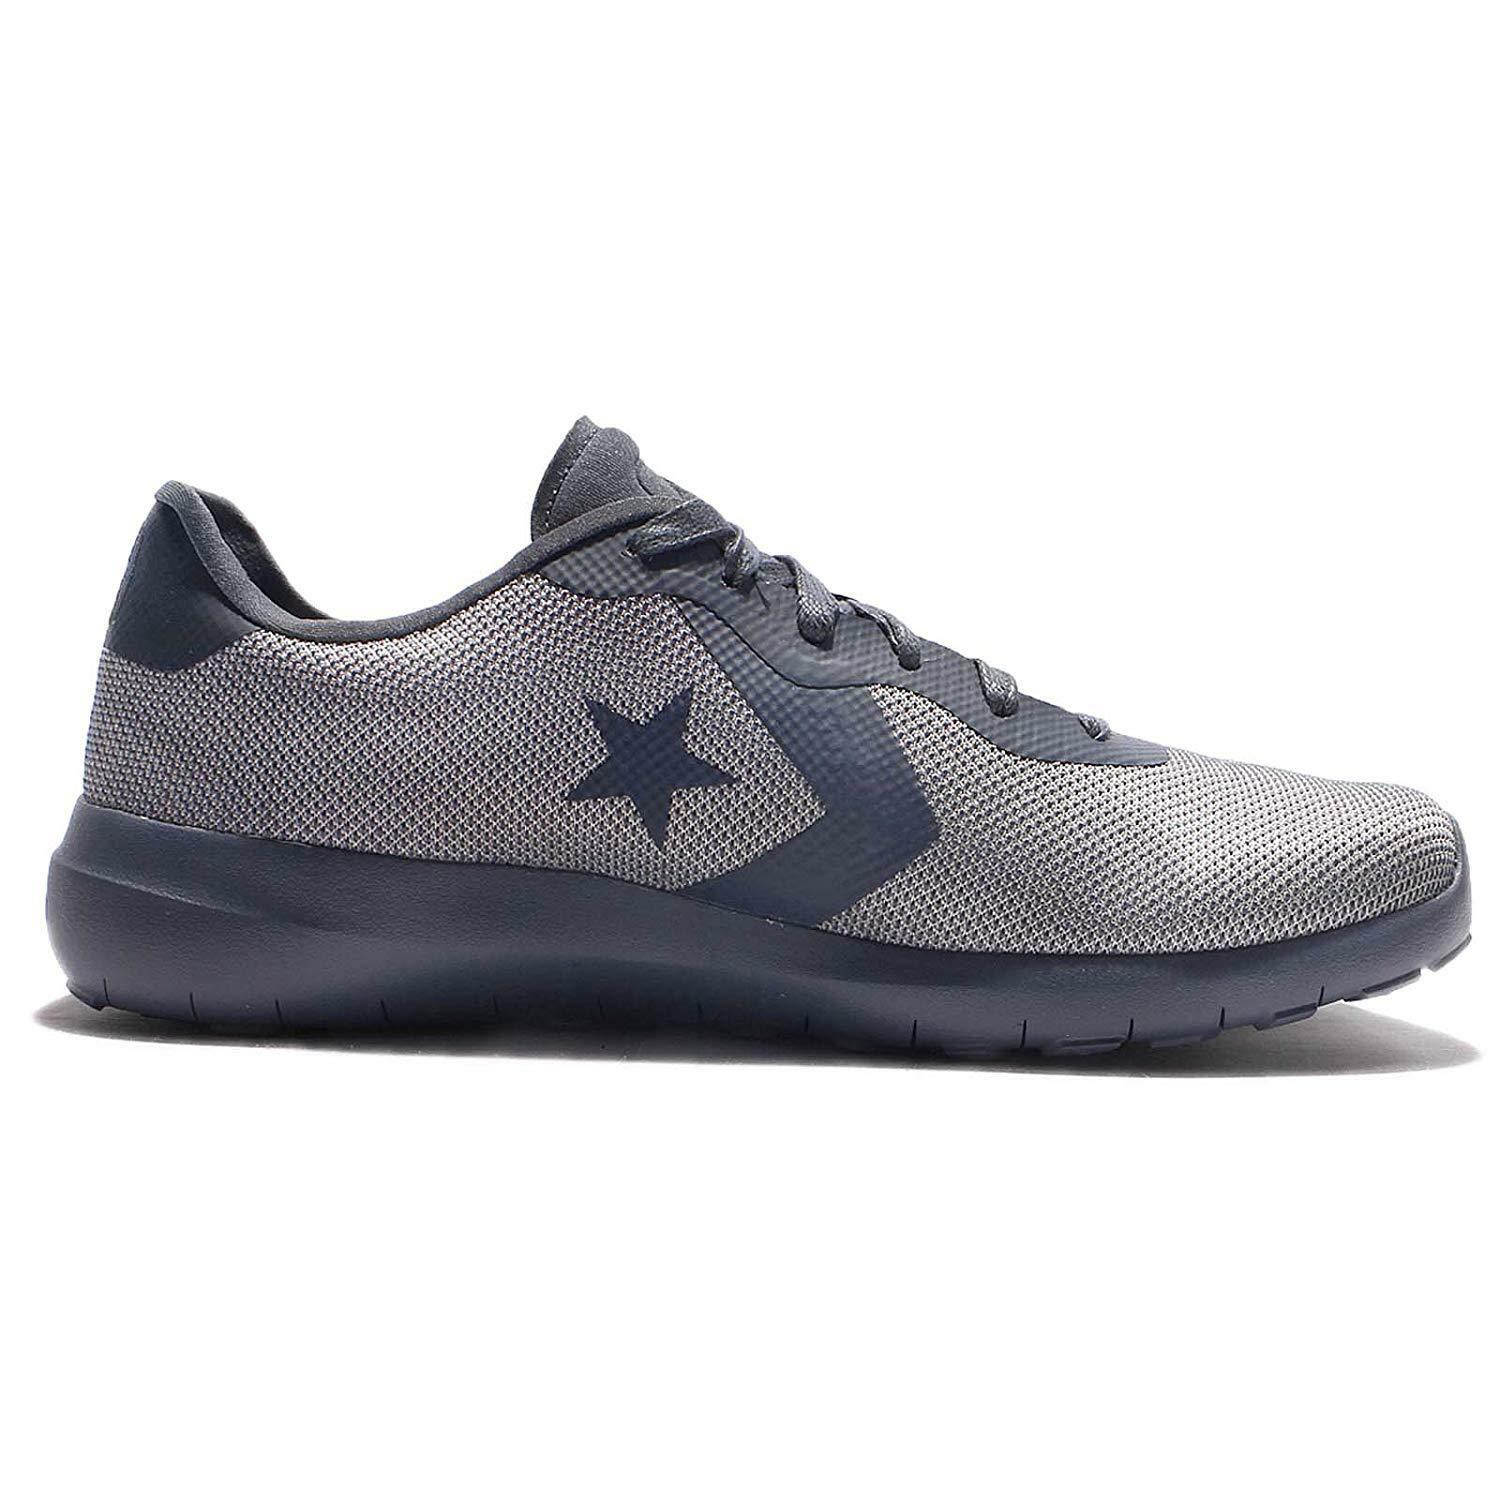 NEW Converse Auckland Modern OX Grey Casual shoes 156586CUK 8.5 US 9.5 EUR 43